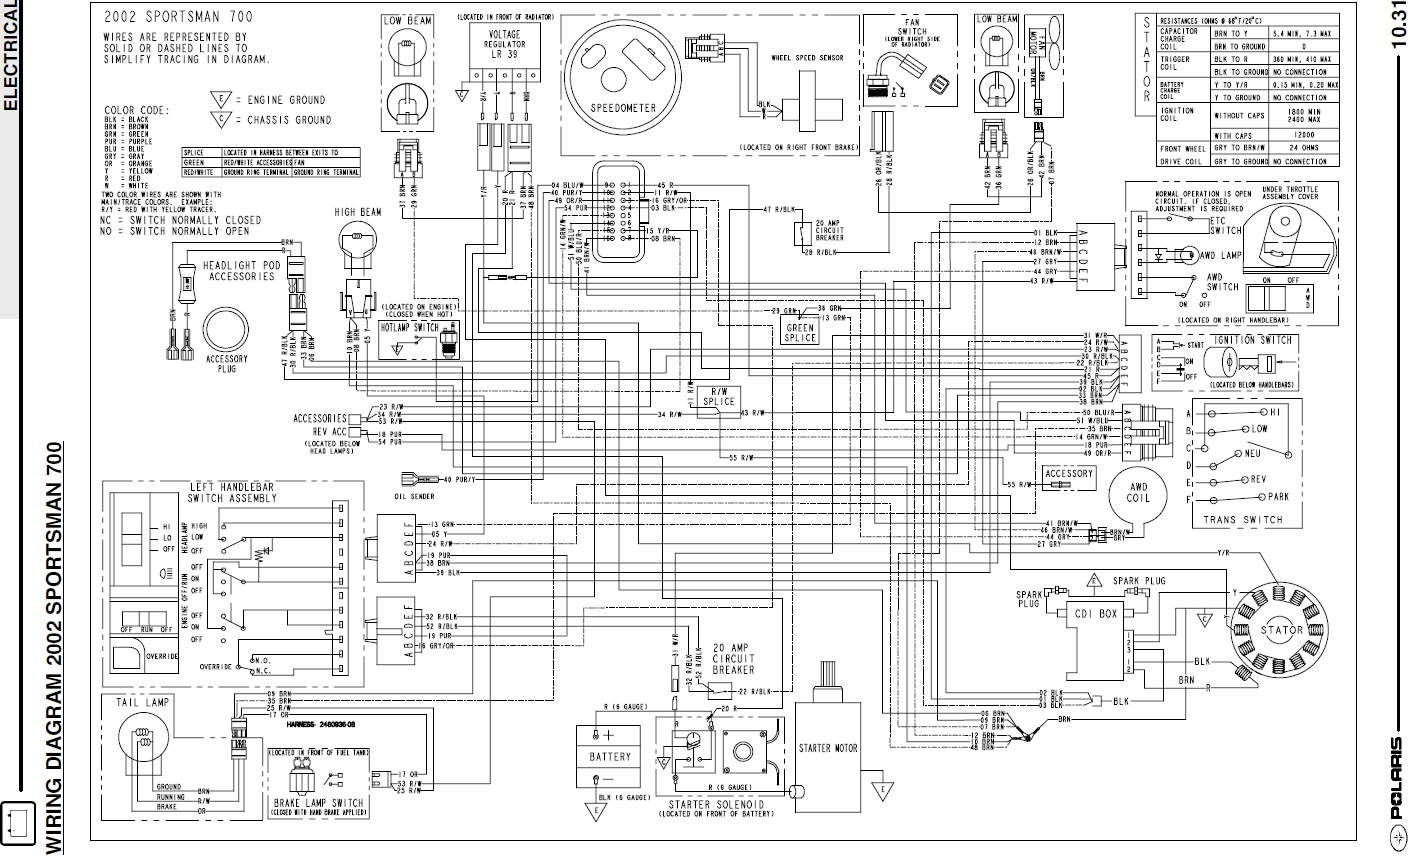 2012 polaris rzr 800 wiring diagram Download-2002 Polaris Sportsman 700 Parts Diagram Best Excellent Polaris Ranger 700 Wiring Diagram S Electrical 1-m